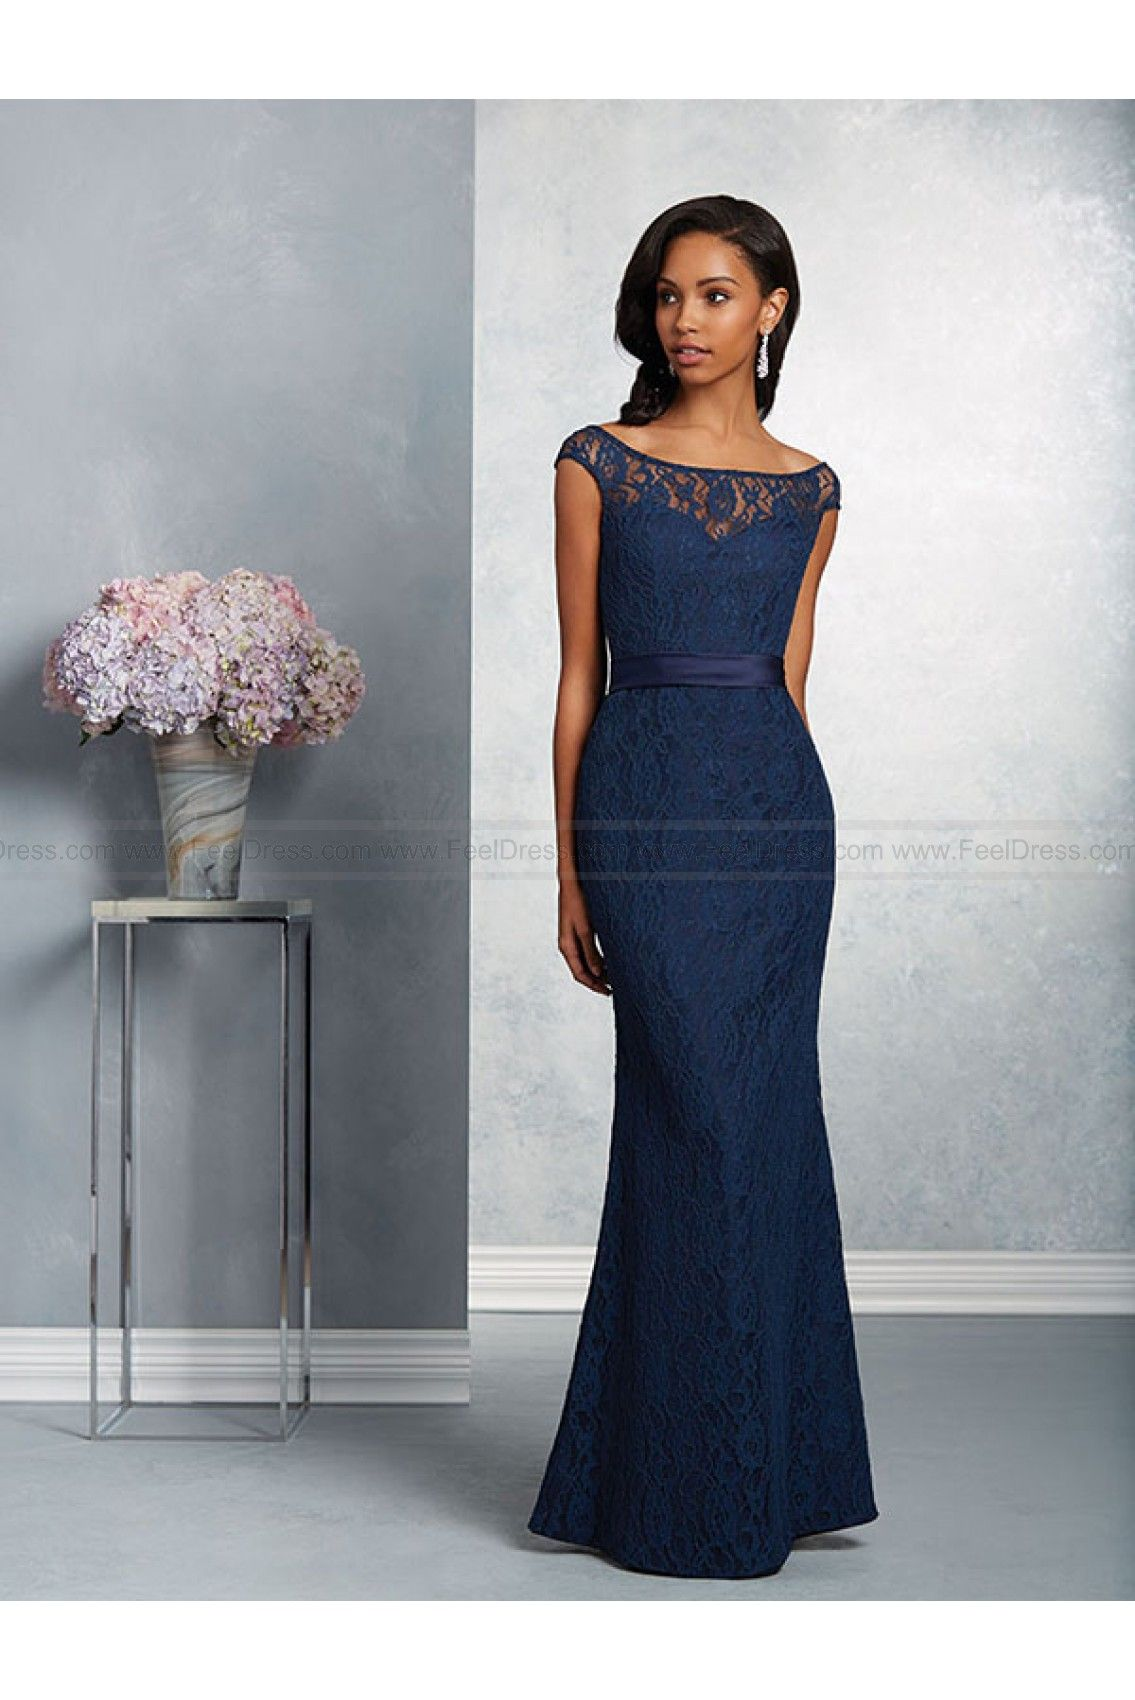 Alfred angelo bridesmaid dress style 7410 new alfred angelo alfred angelo bridesmaid dress style 7410 new ombrellifo Image collections